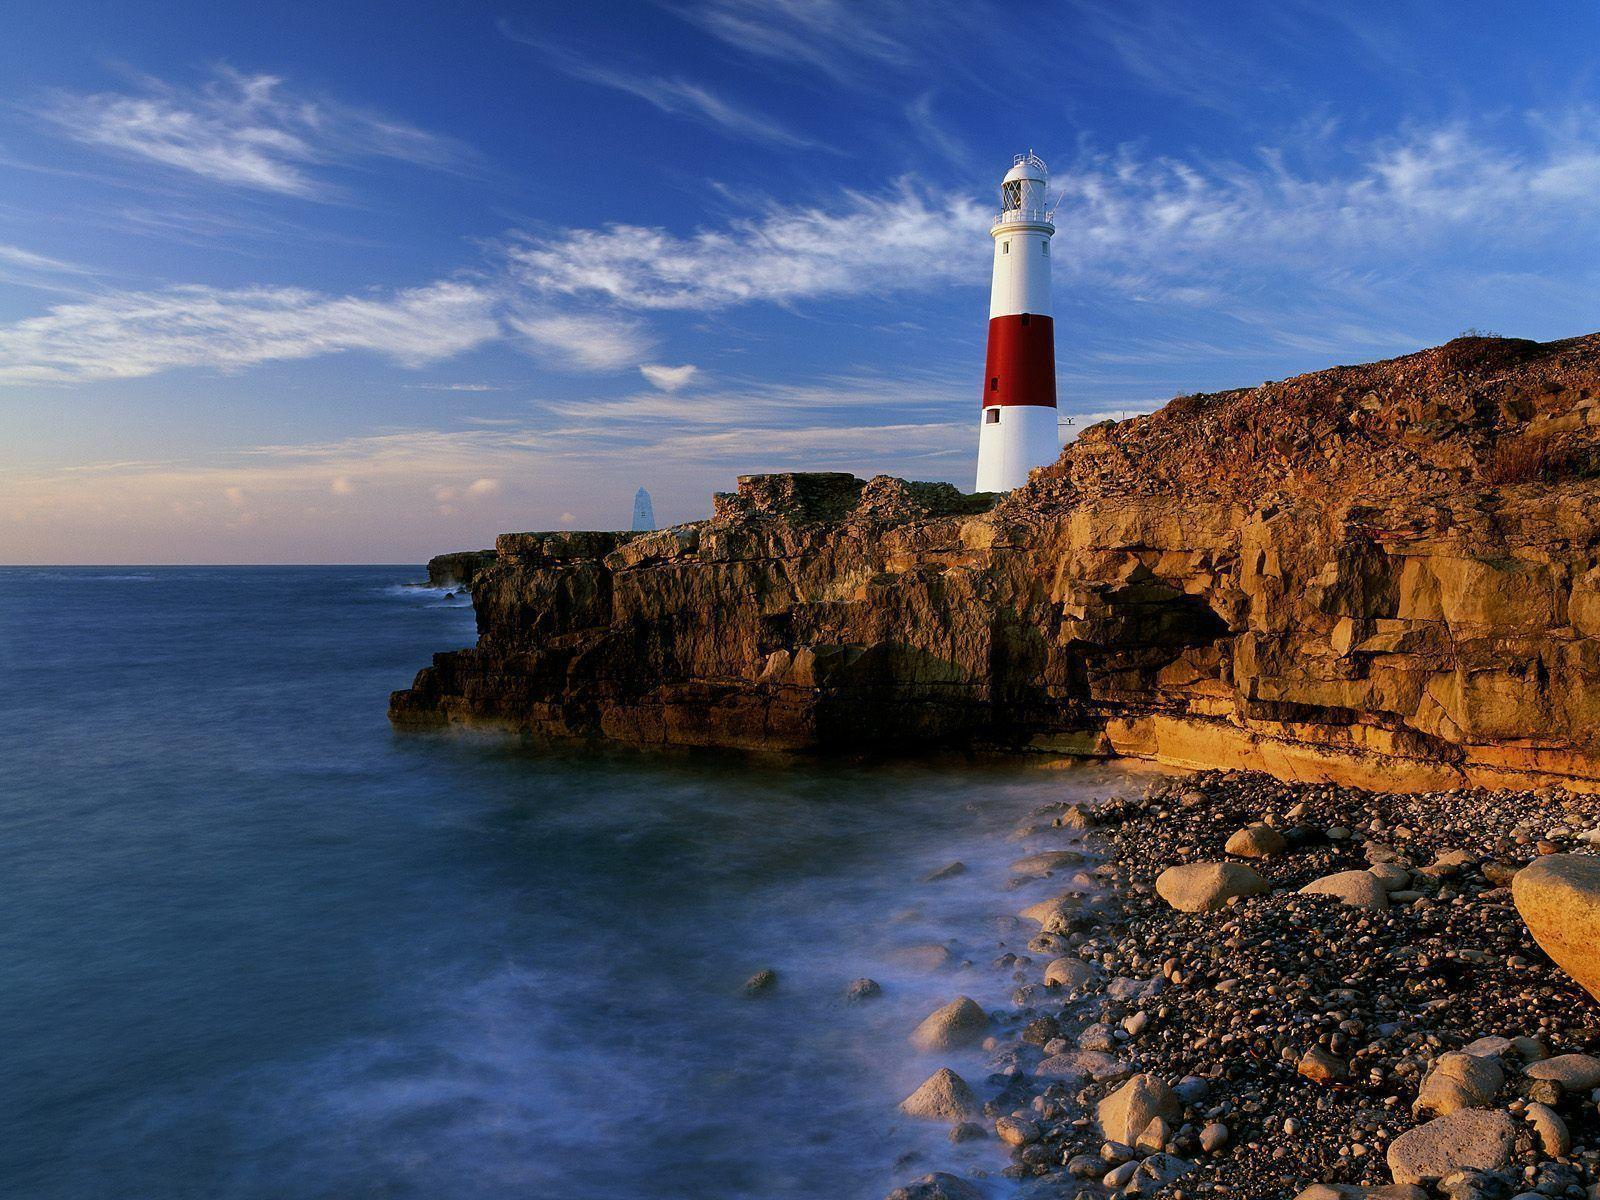 Wallpapers Tagged With LIGHTHOUSE | LIGHTHOUSE HD Wallpapers | Page 1